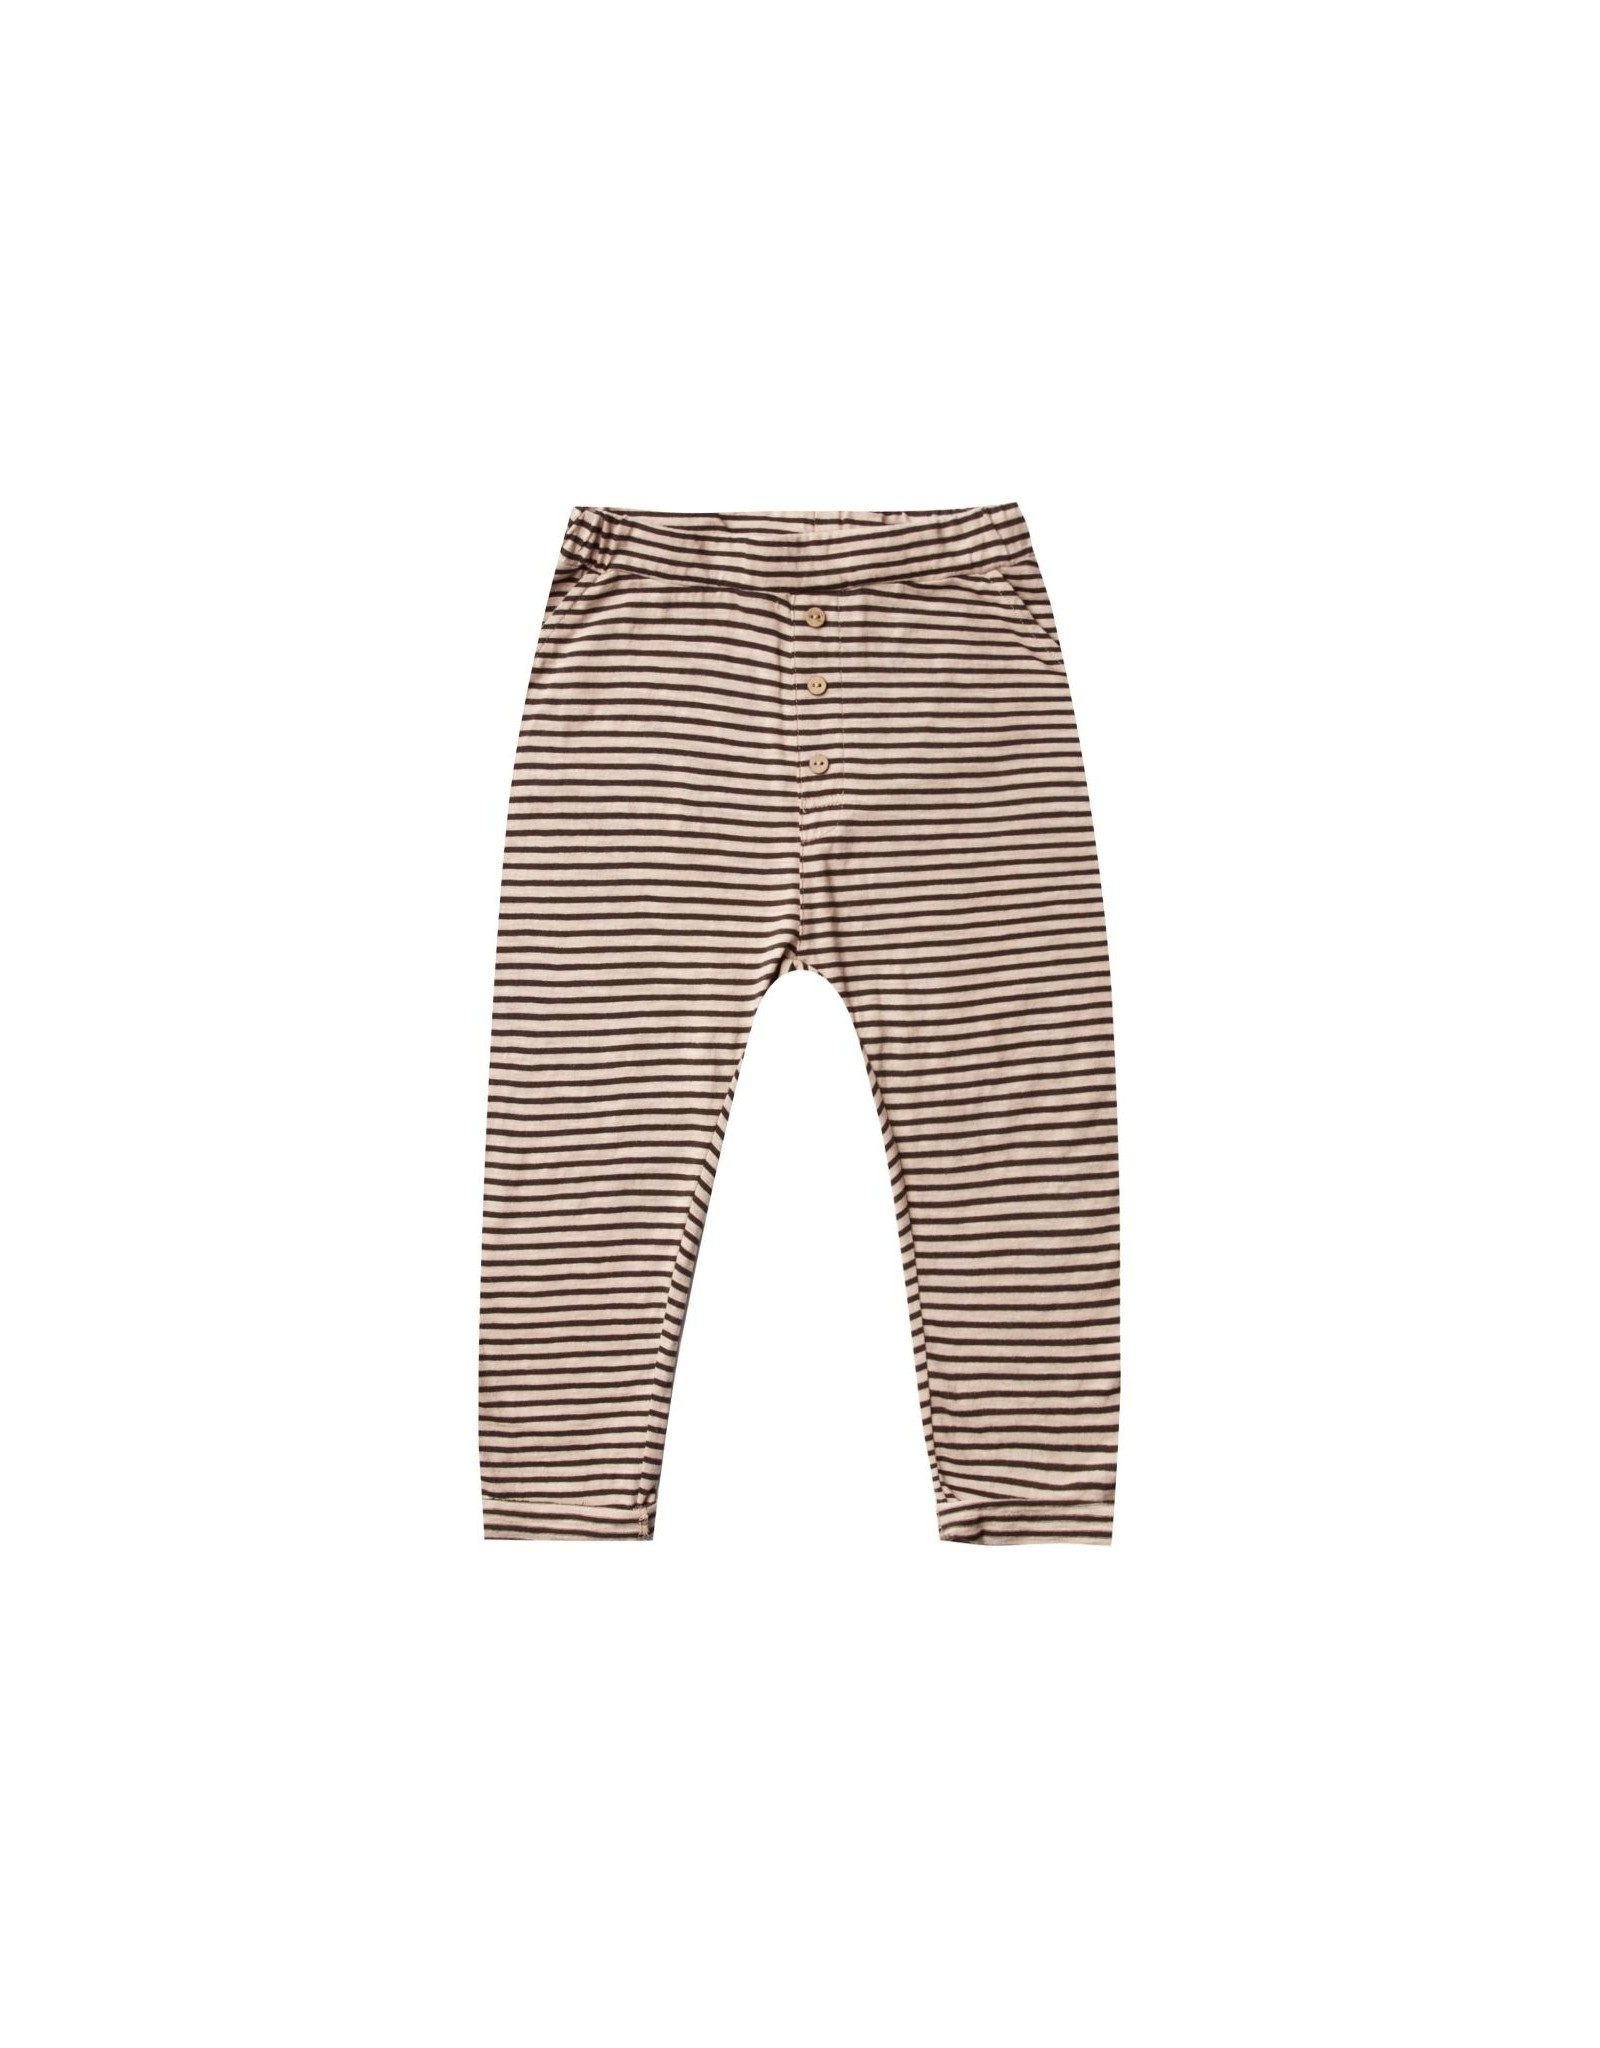 Rylee and Cru striped cru pant